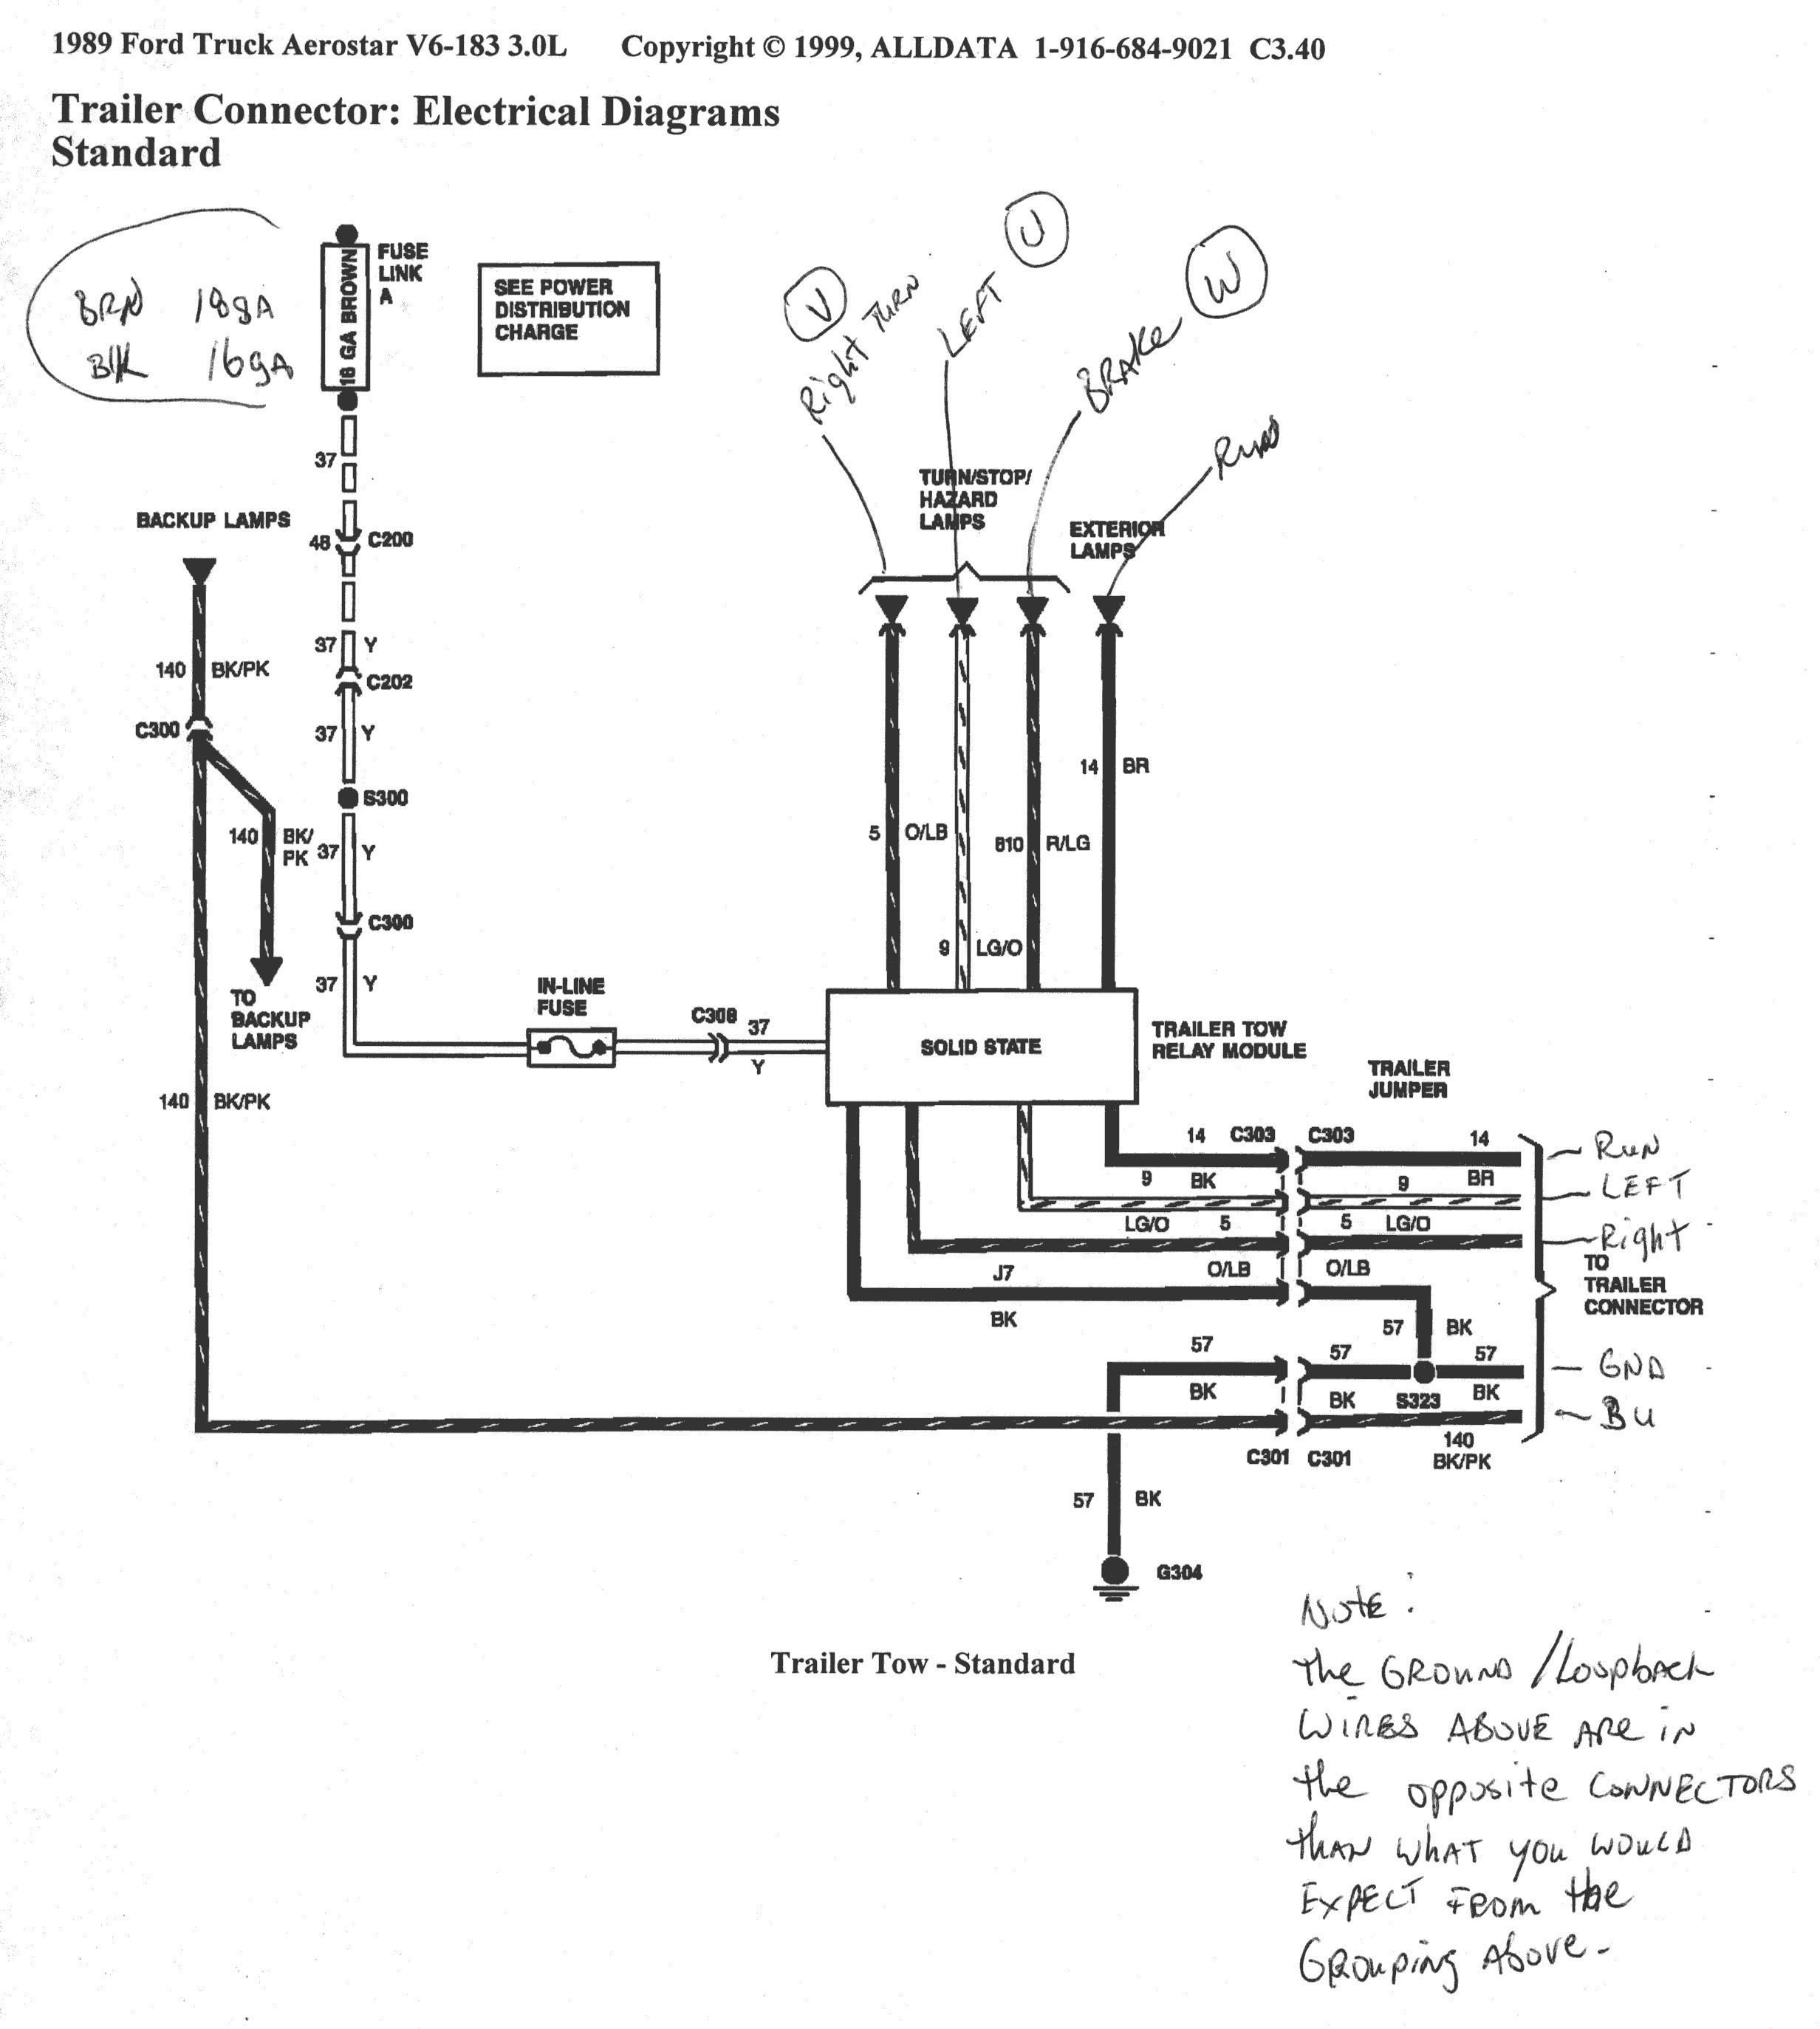 2005 ford f150 trailer wiring diagram Download-Wiring Diagram For A Ford F150 Trailer Lights Plug 2018 Wiring Diagram For Semi Trailer Plug Best Wiring Diagram Ford F150 19-n